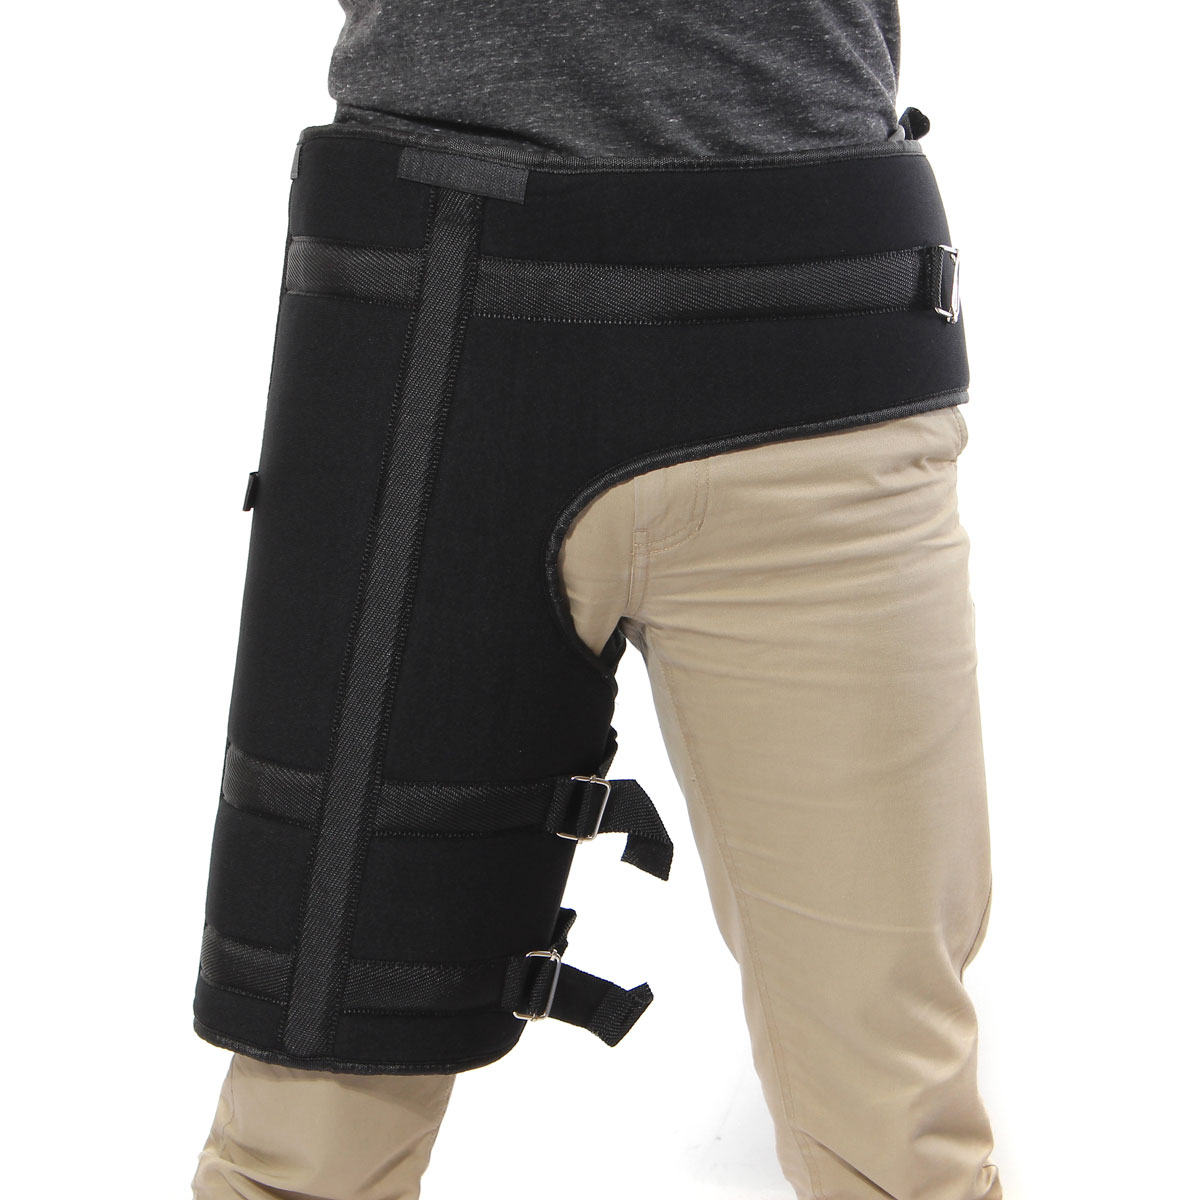 Hip Support Groin Black Stabilizer Support Brace Fracture